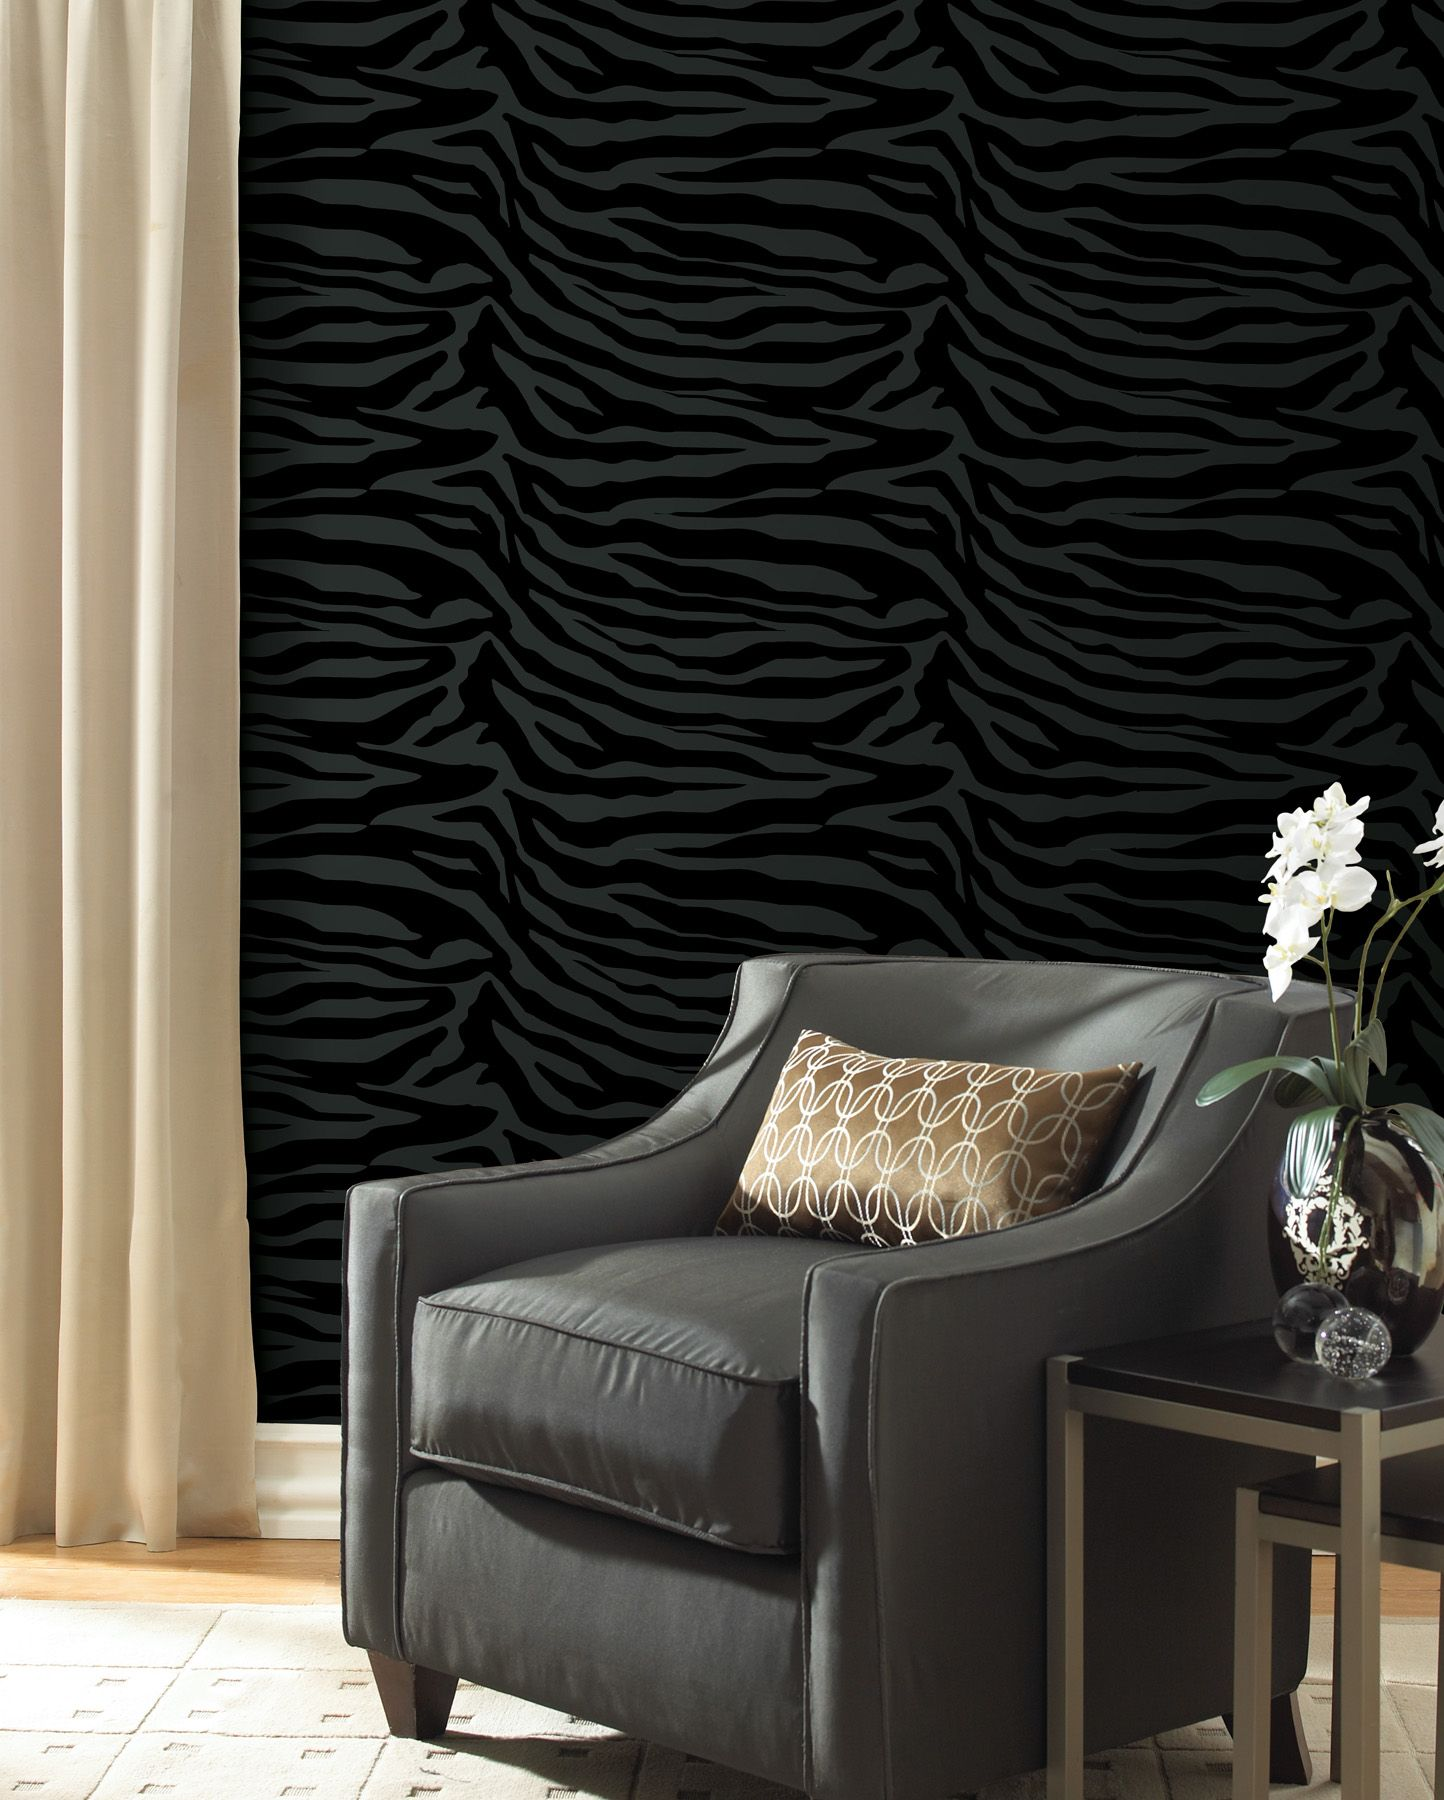 Dramatic Black Living Room Feature Wall With A Chic Zebra Print Wallpaper  Modern Decor Idea